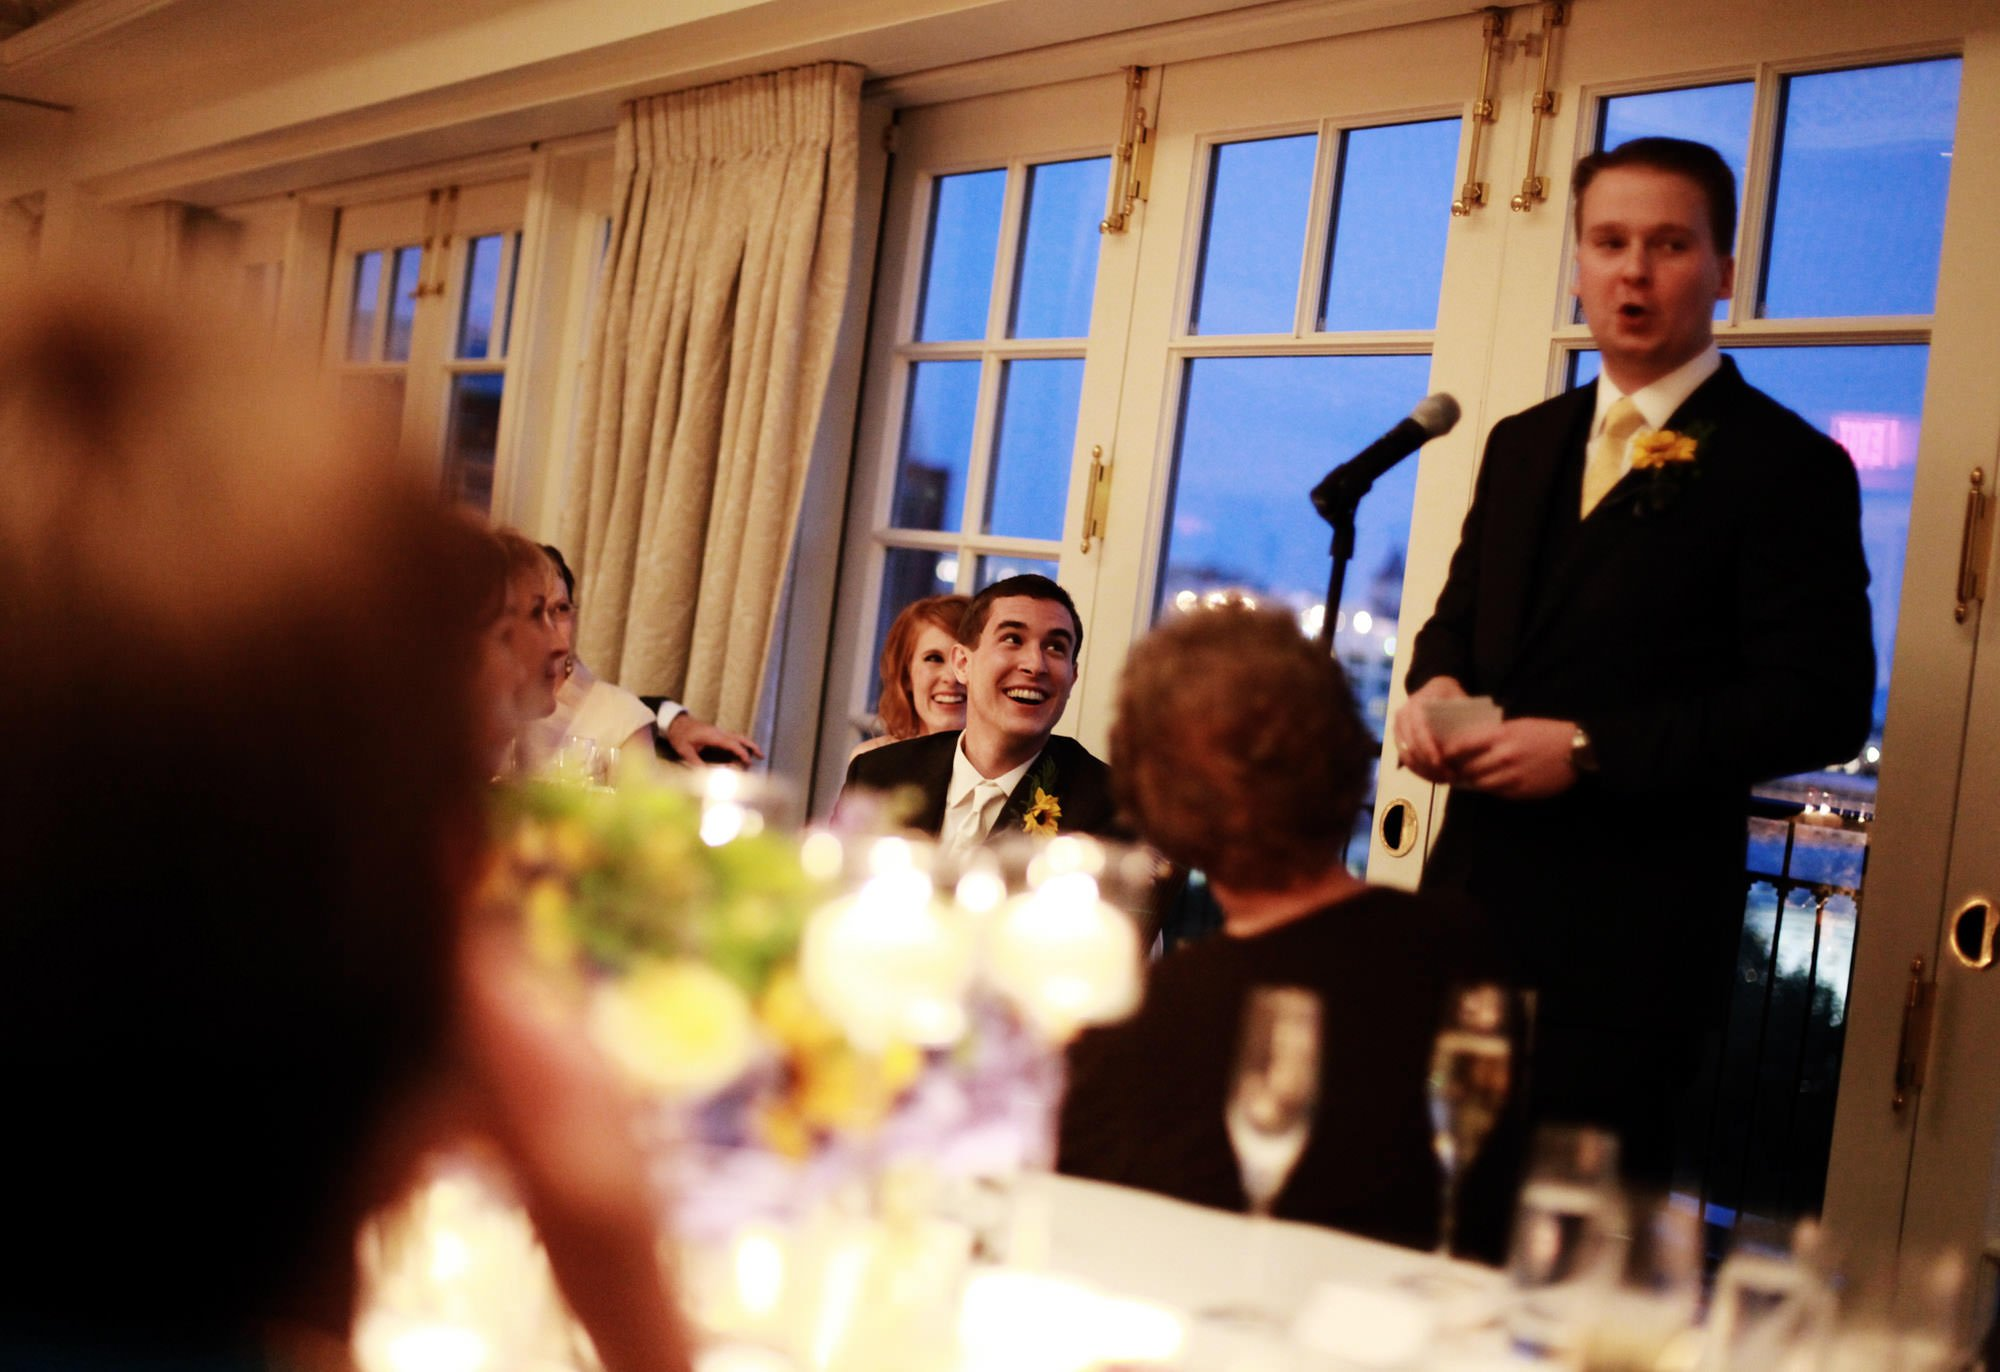 The groom listens to toasts during the wedding reception.